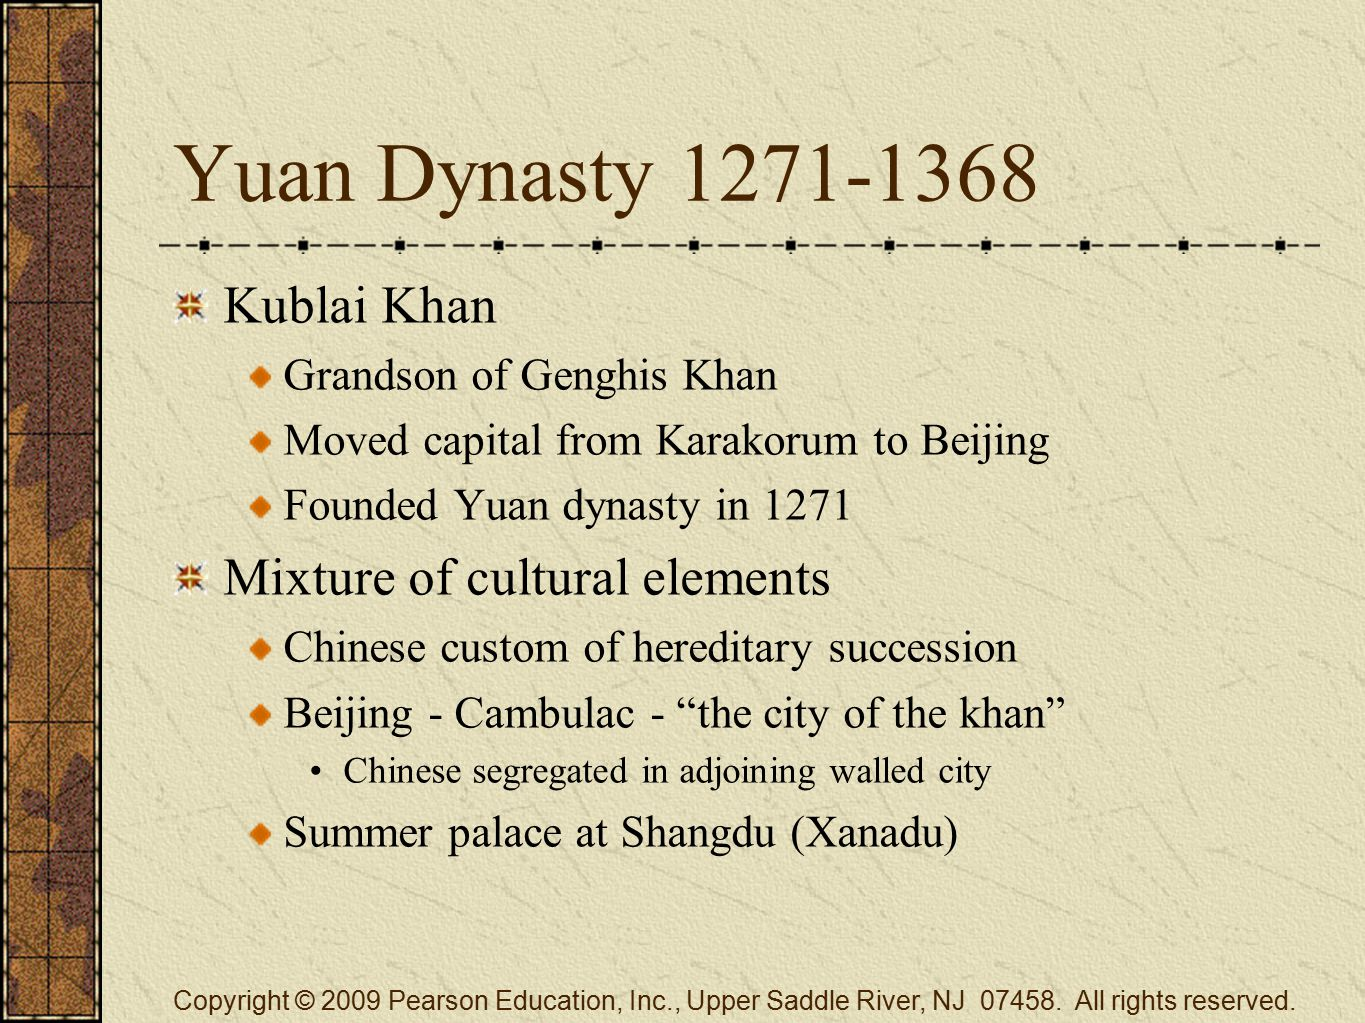 Yuan Dynasty 1271-1368 Kublai Khan Grandson of Genghis Khan Moved capital from Karakorum to Beijing Founded Yuan dynasty in 1271 Mixture of cultural elements Chinese custom of hereditary succession Beijing - Cambulac - the city of the khan Chinese segregated in adjoining walled city Summer palace at Shangdu (Xanadu) Copyright © 2009 Pearson Education, Inc., Upper Saddle River, NJ 07458.